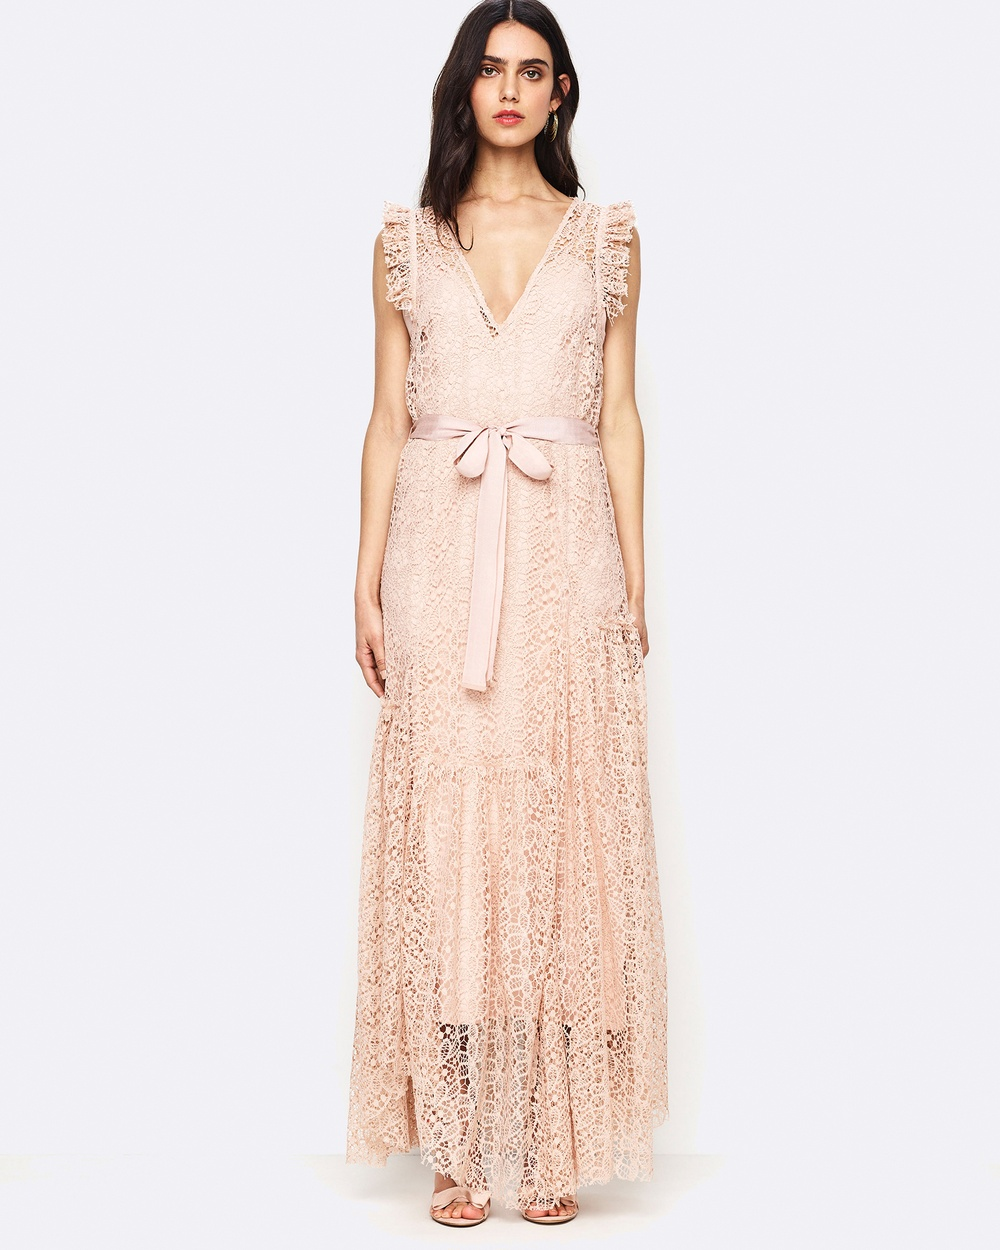 da4e05efad1 ... alice McCALL Reflection Gown Bridesmaid Dresses Nude Reflection Gown